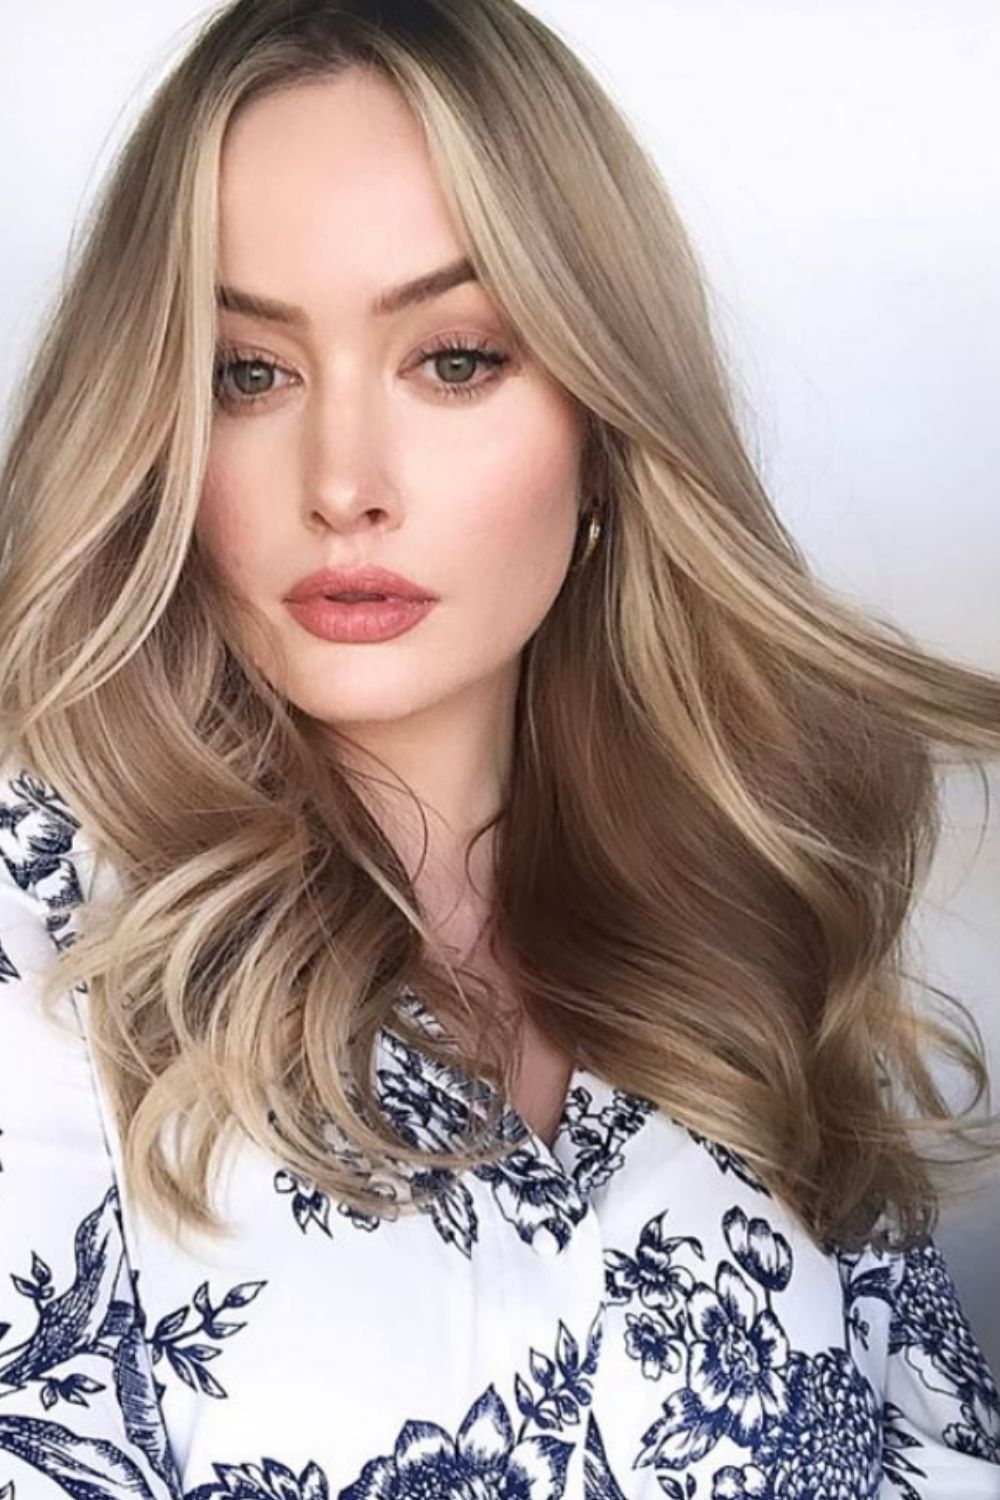 35+ The trends of soft curtain bangs long hair for summer hairstyles